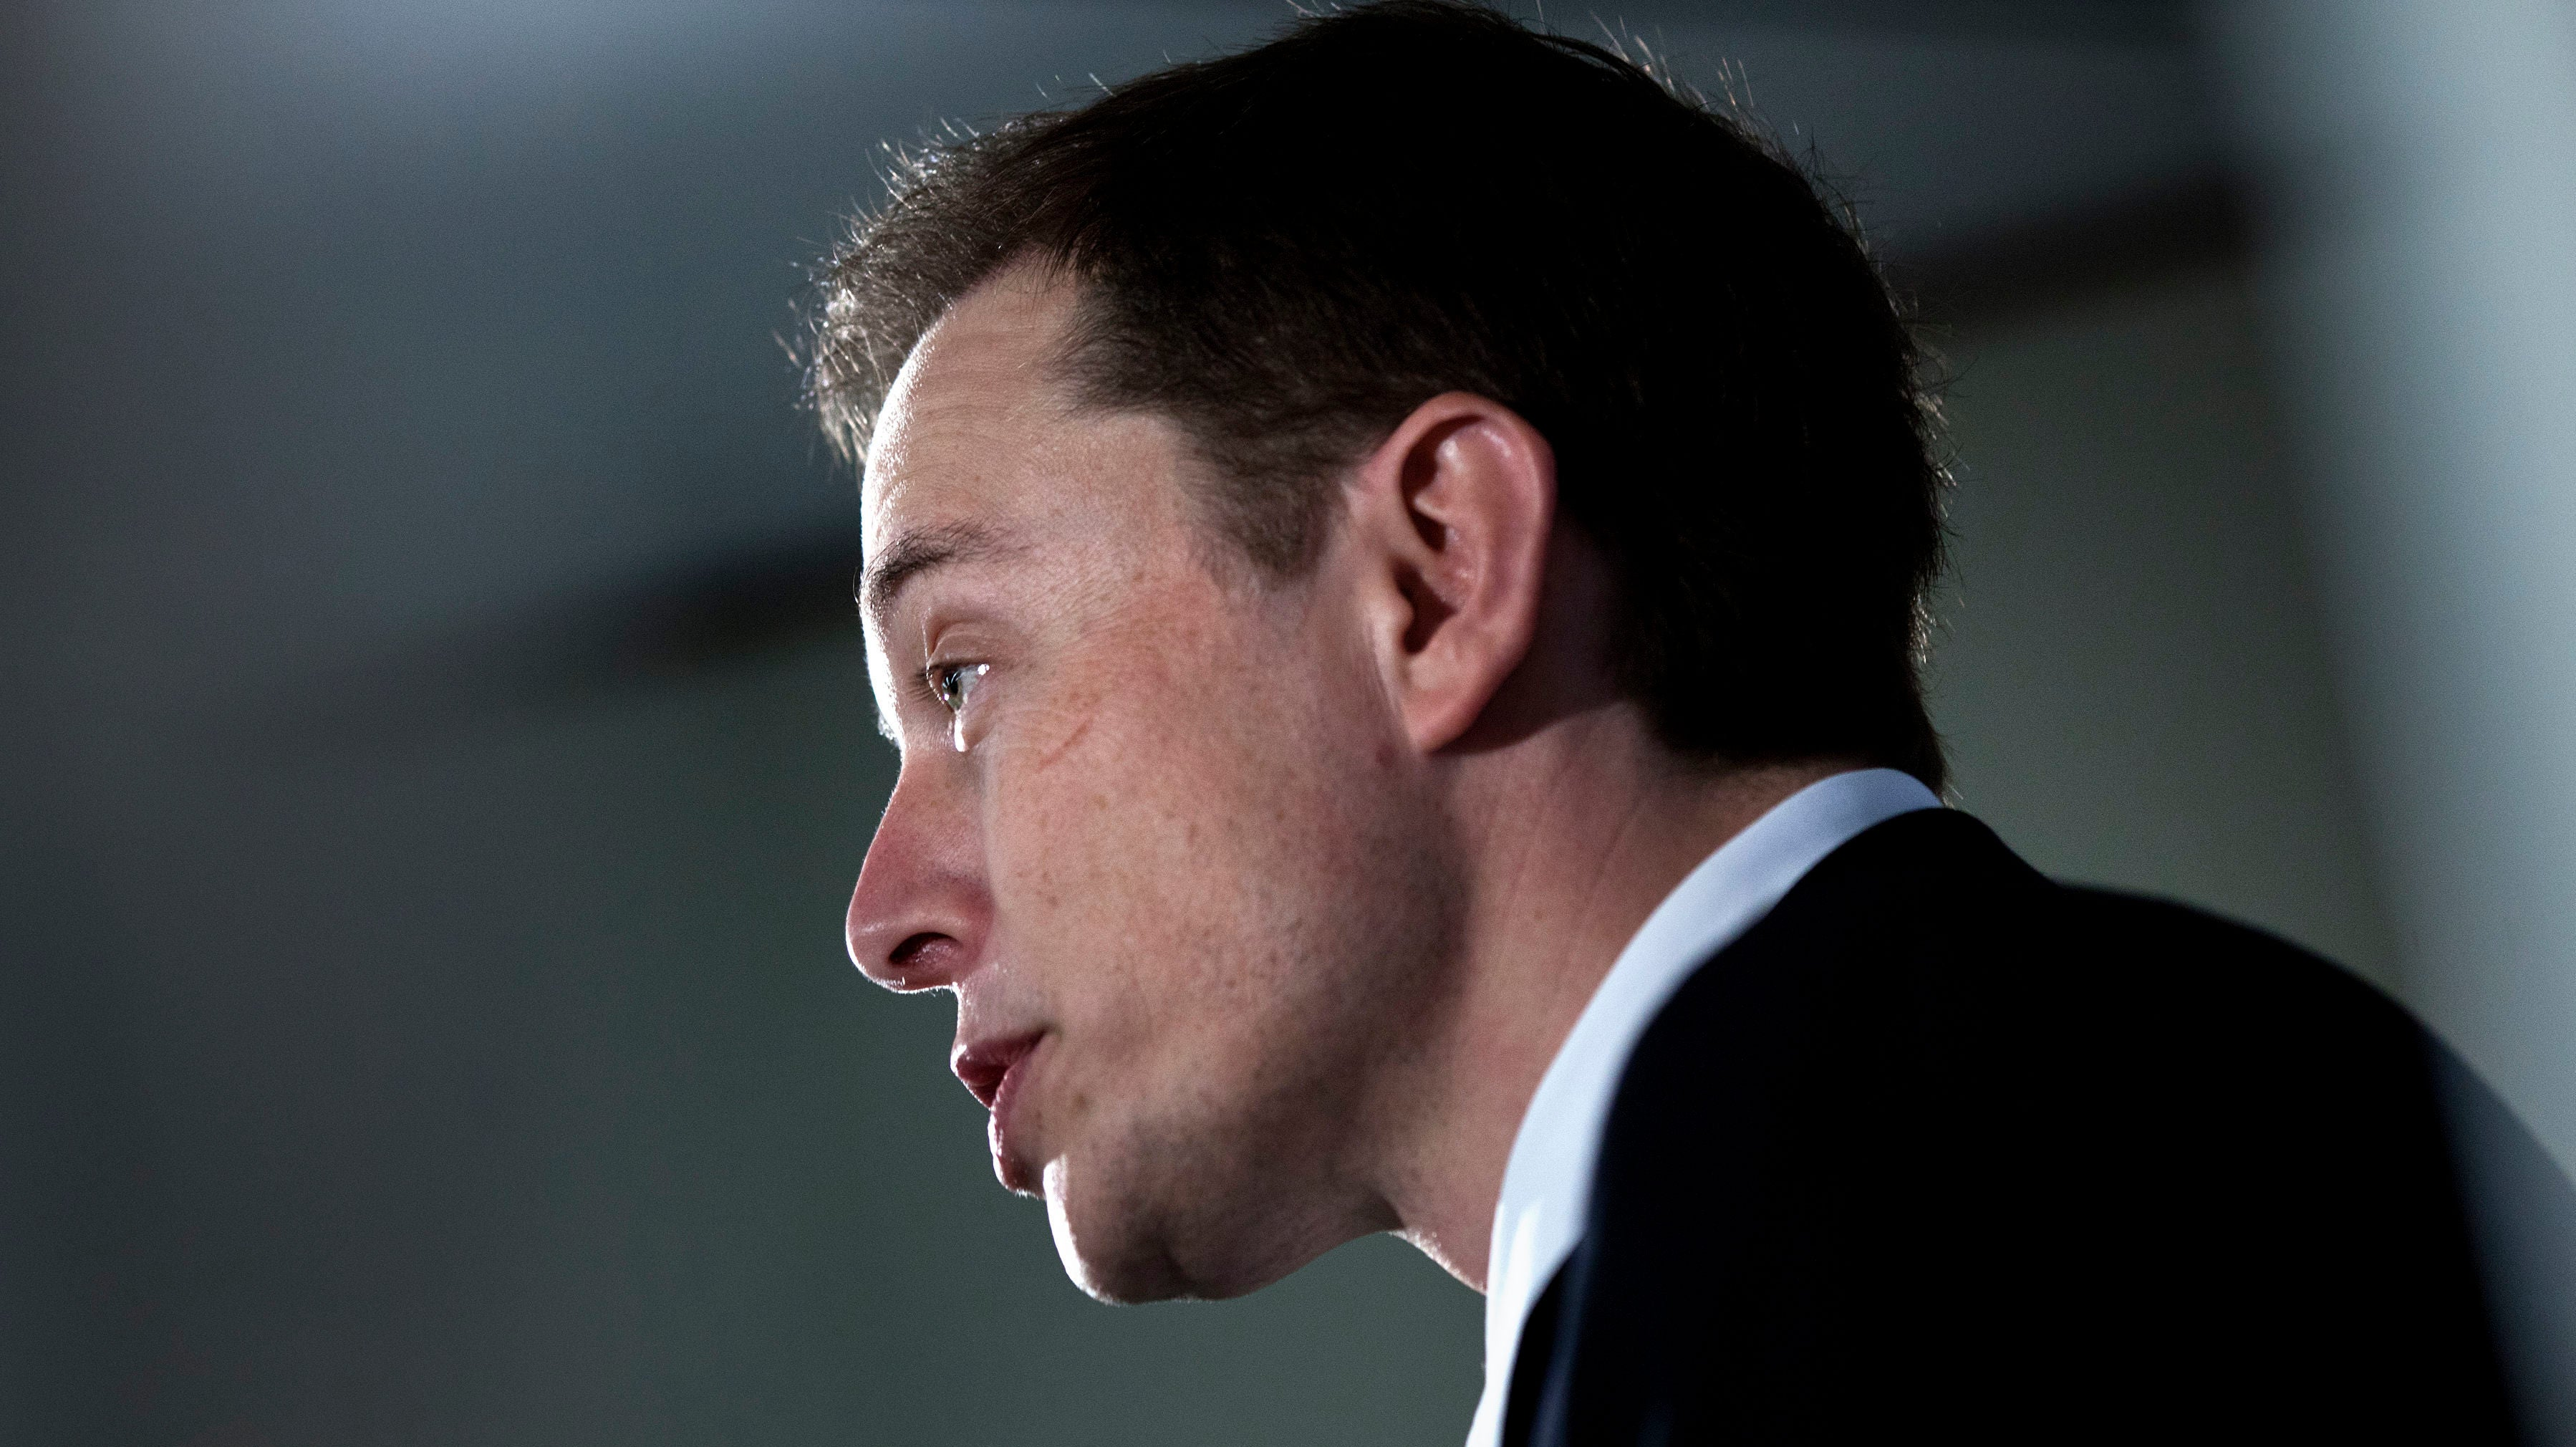 Elon Musk Donates Over $680,000 To Help Flint Schools Clean Tainted Water